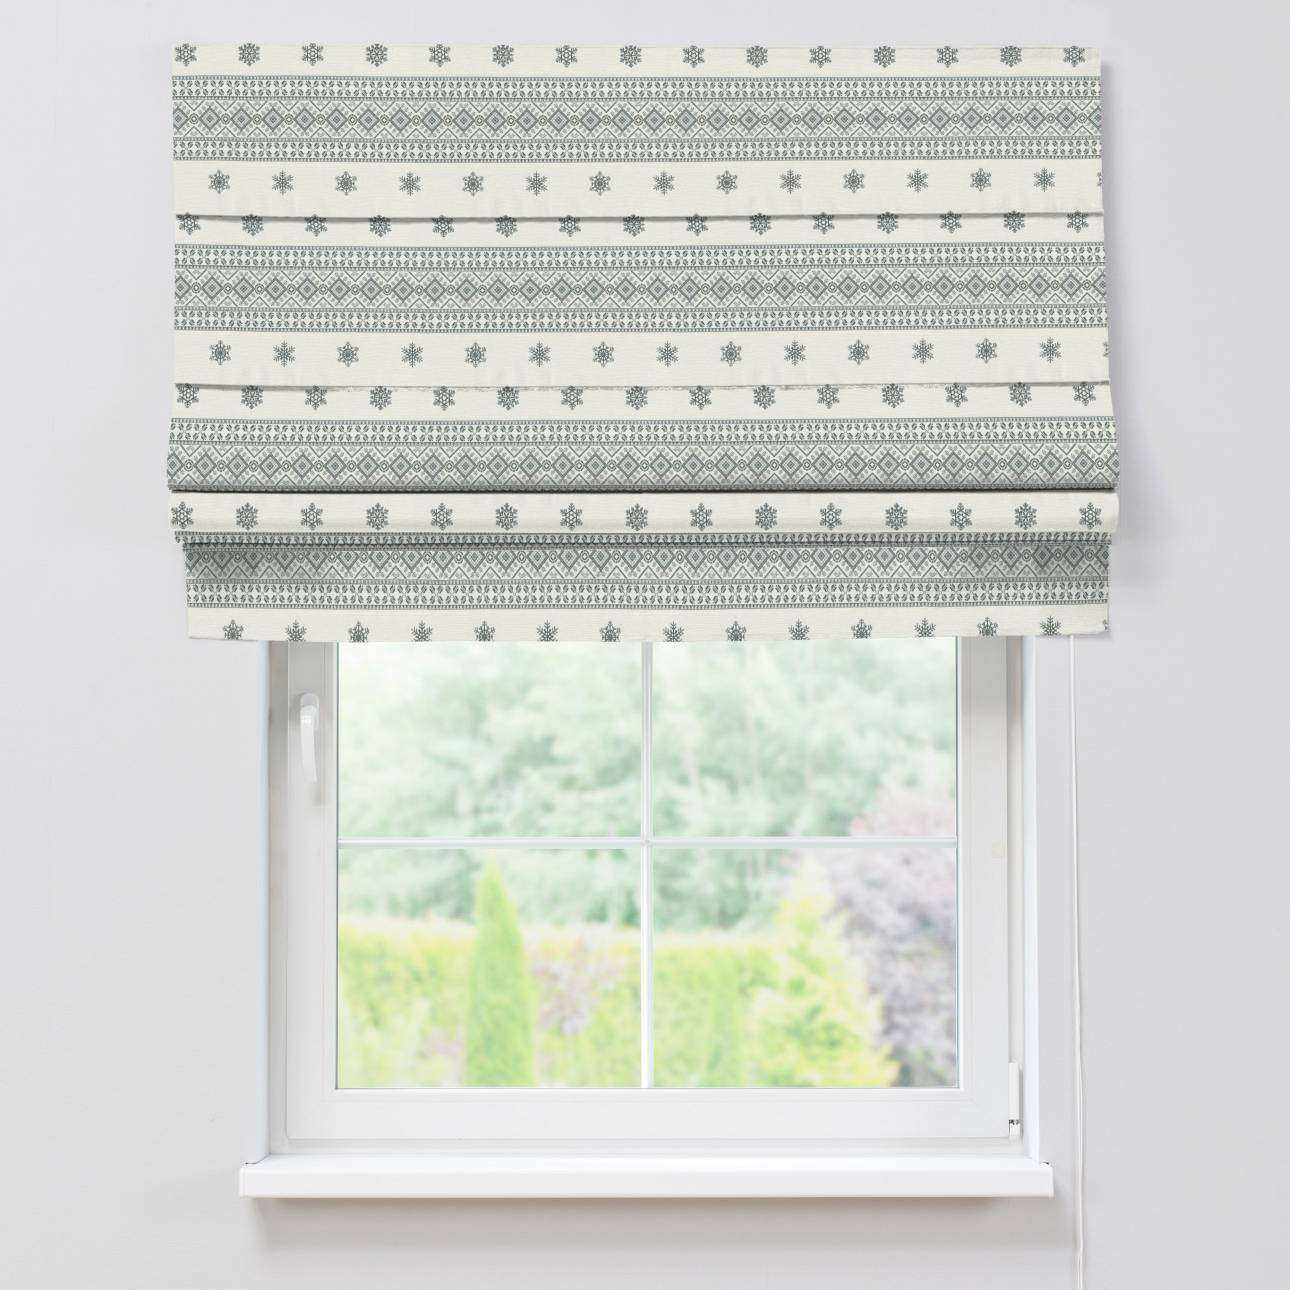 Padva roman blind  80 x 170 cm (31.5 x 67 inch) in collection Christmas , fabric: 630-25